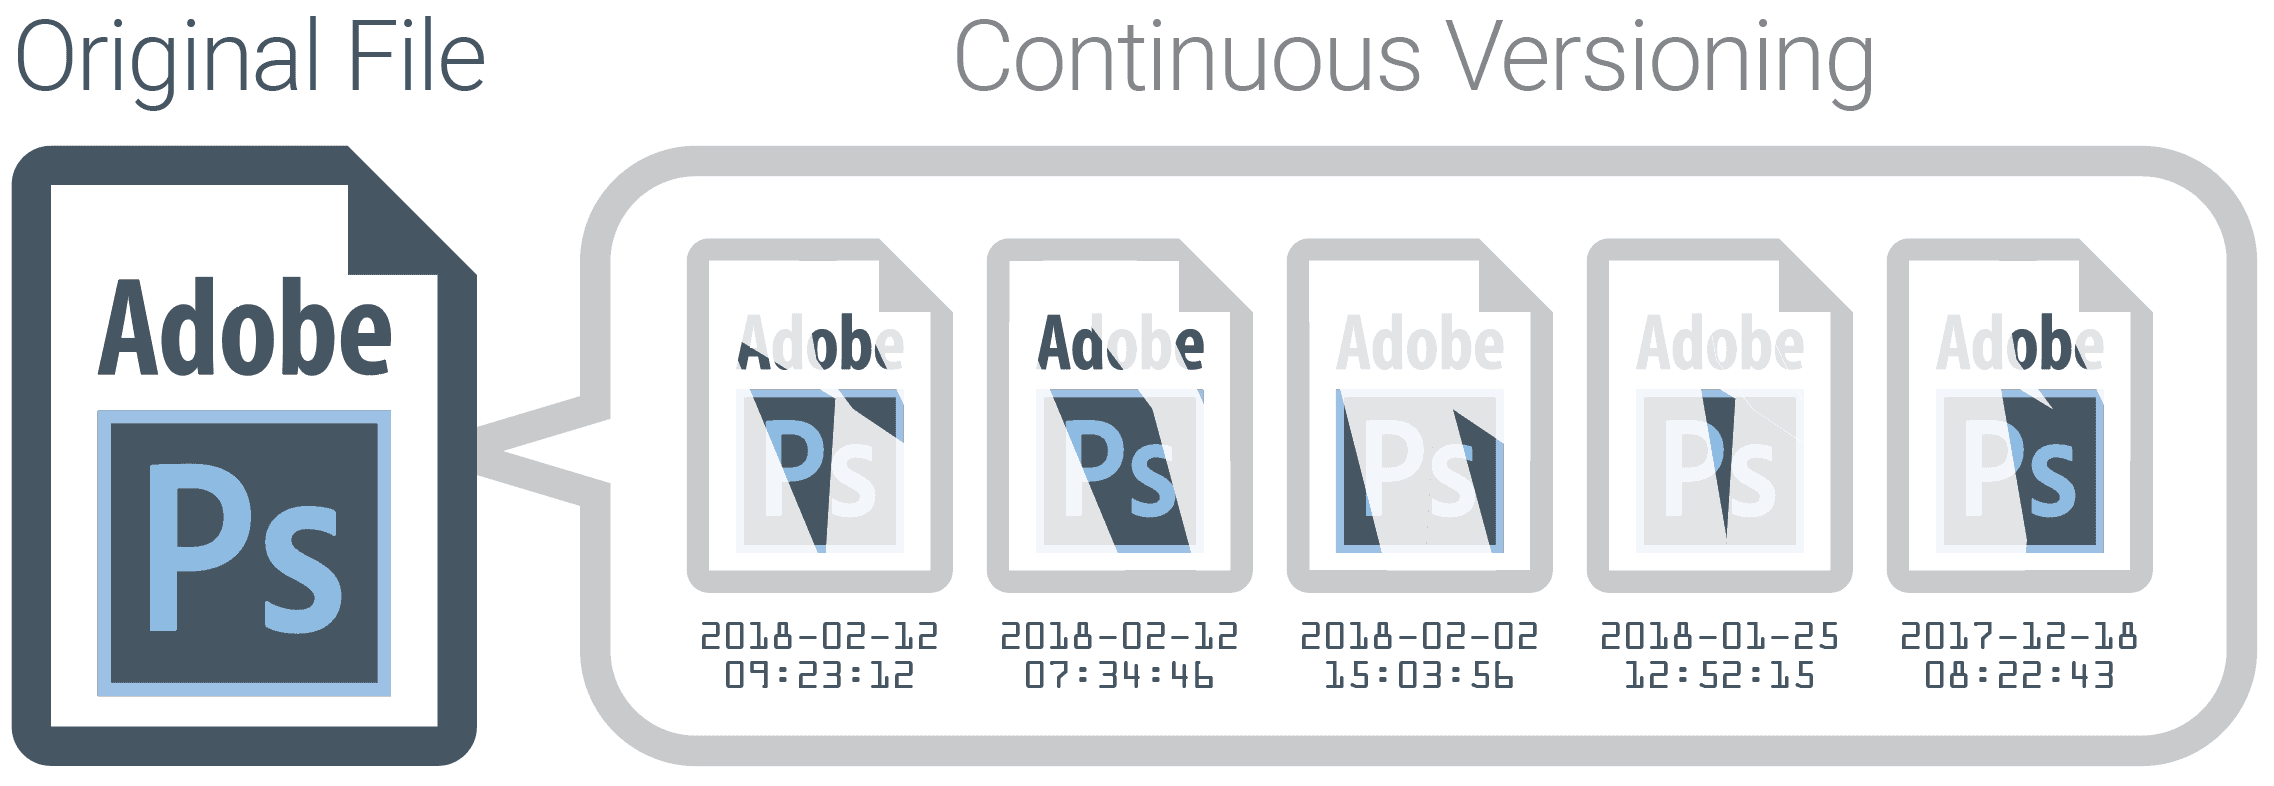 Continuous File Versioning